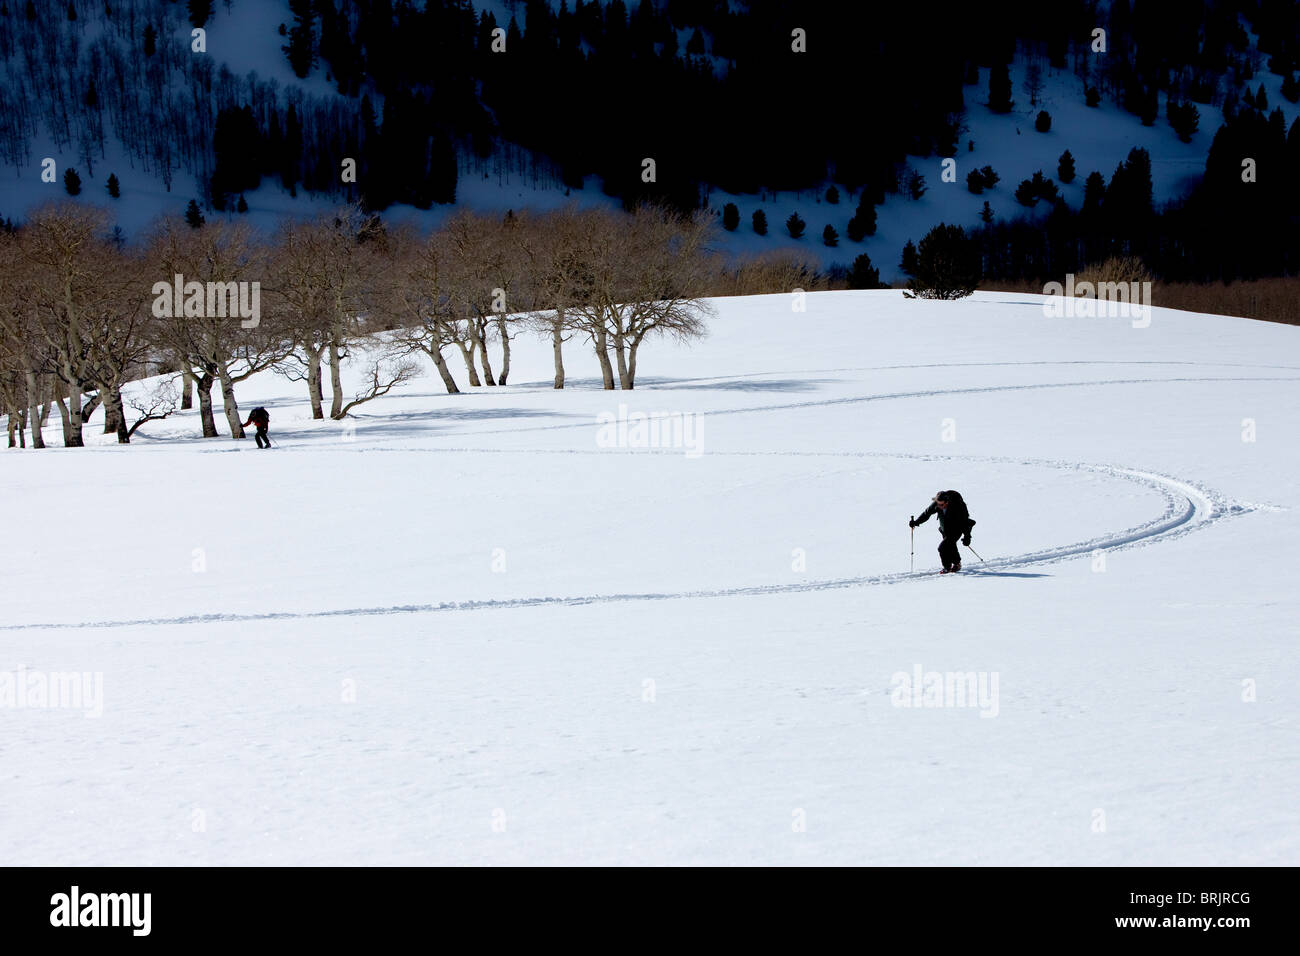 Two men backcountry touring / hiking up hill on clean snow. - Stock Image